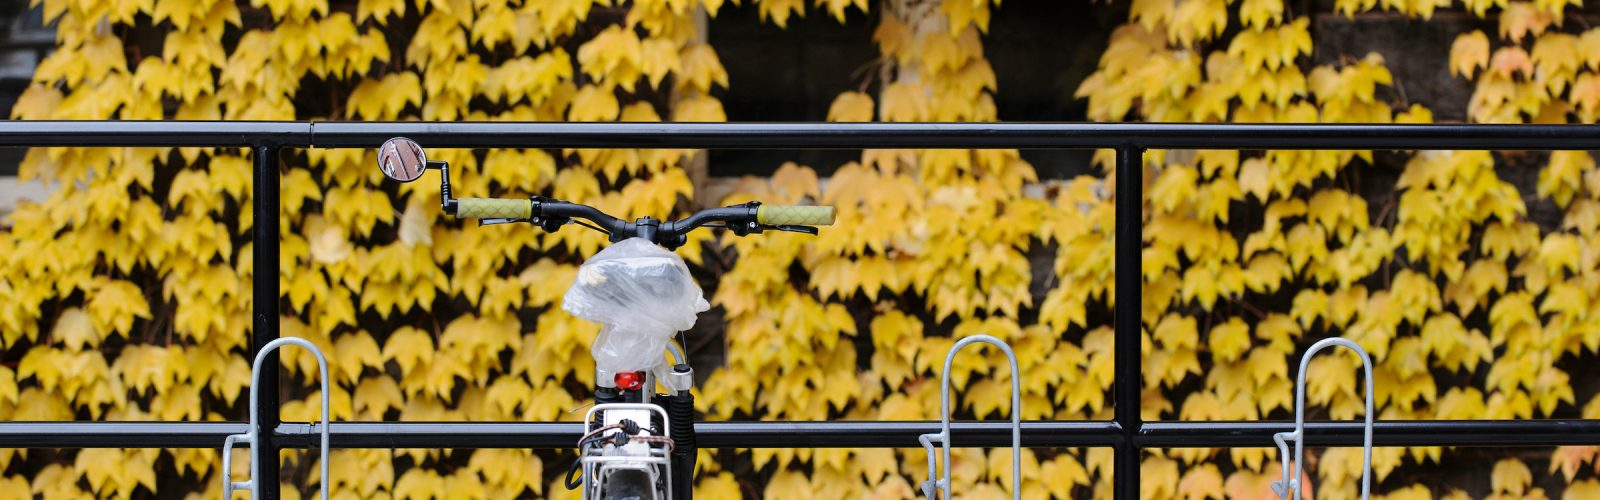 A bag-covered bicycle seat suggests rain may be in the forecast as yellow-colored ivy clings to the side of Science Hall at the University of Wisconsin-Madison during autumn on Nov. 8, 2013.